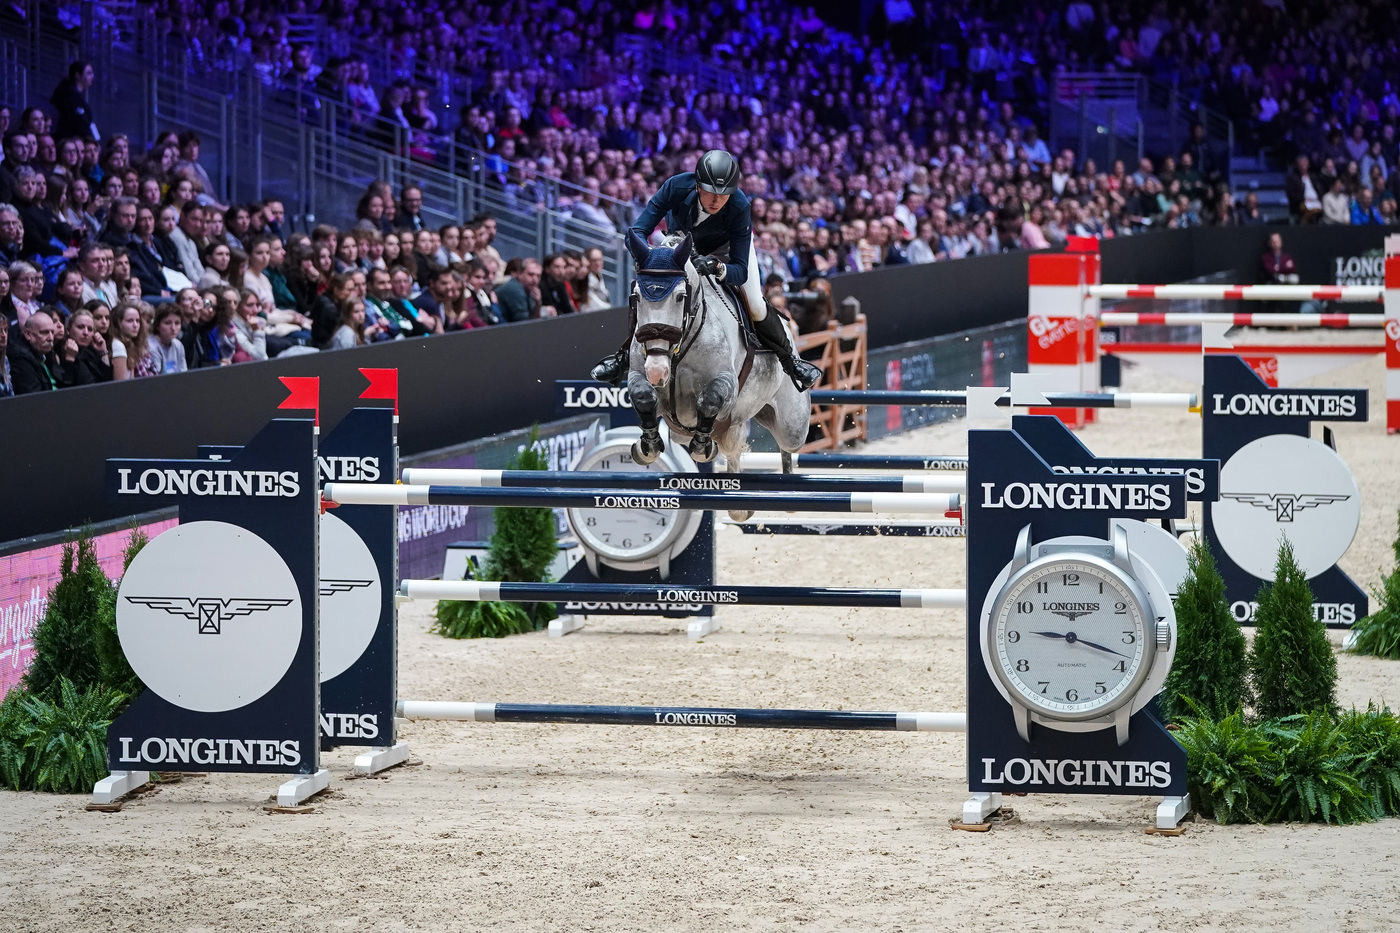 Longines Show Jumping Event: Martin Fuchs and Clooney 51 captured the Longines FEI Jumping World Cup at Longines Equita Lyon, Concours Hippique International 5